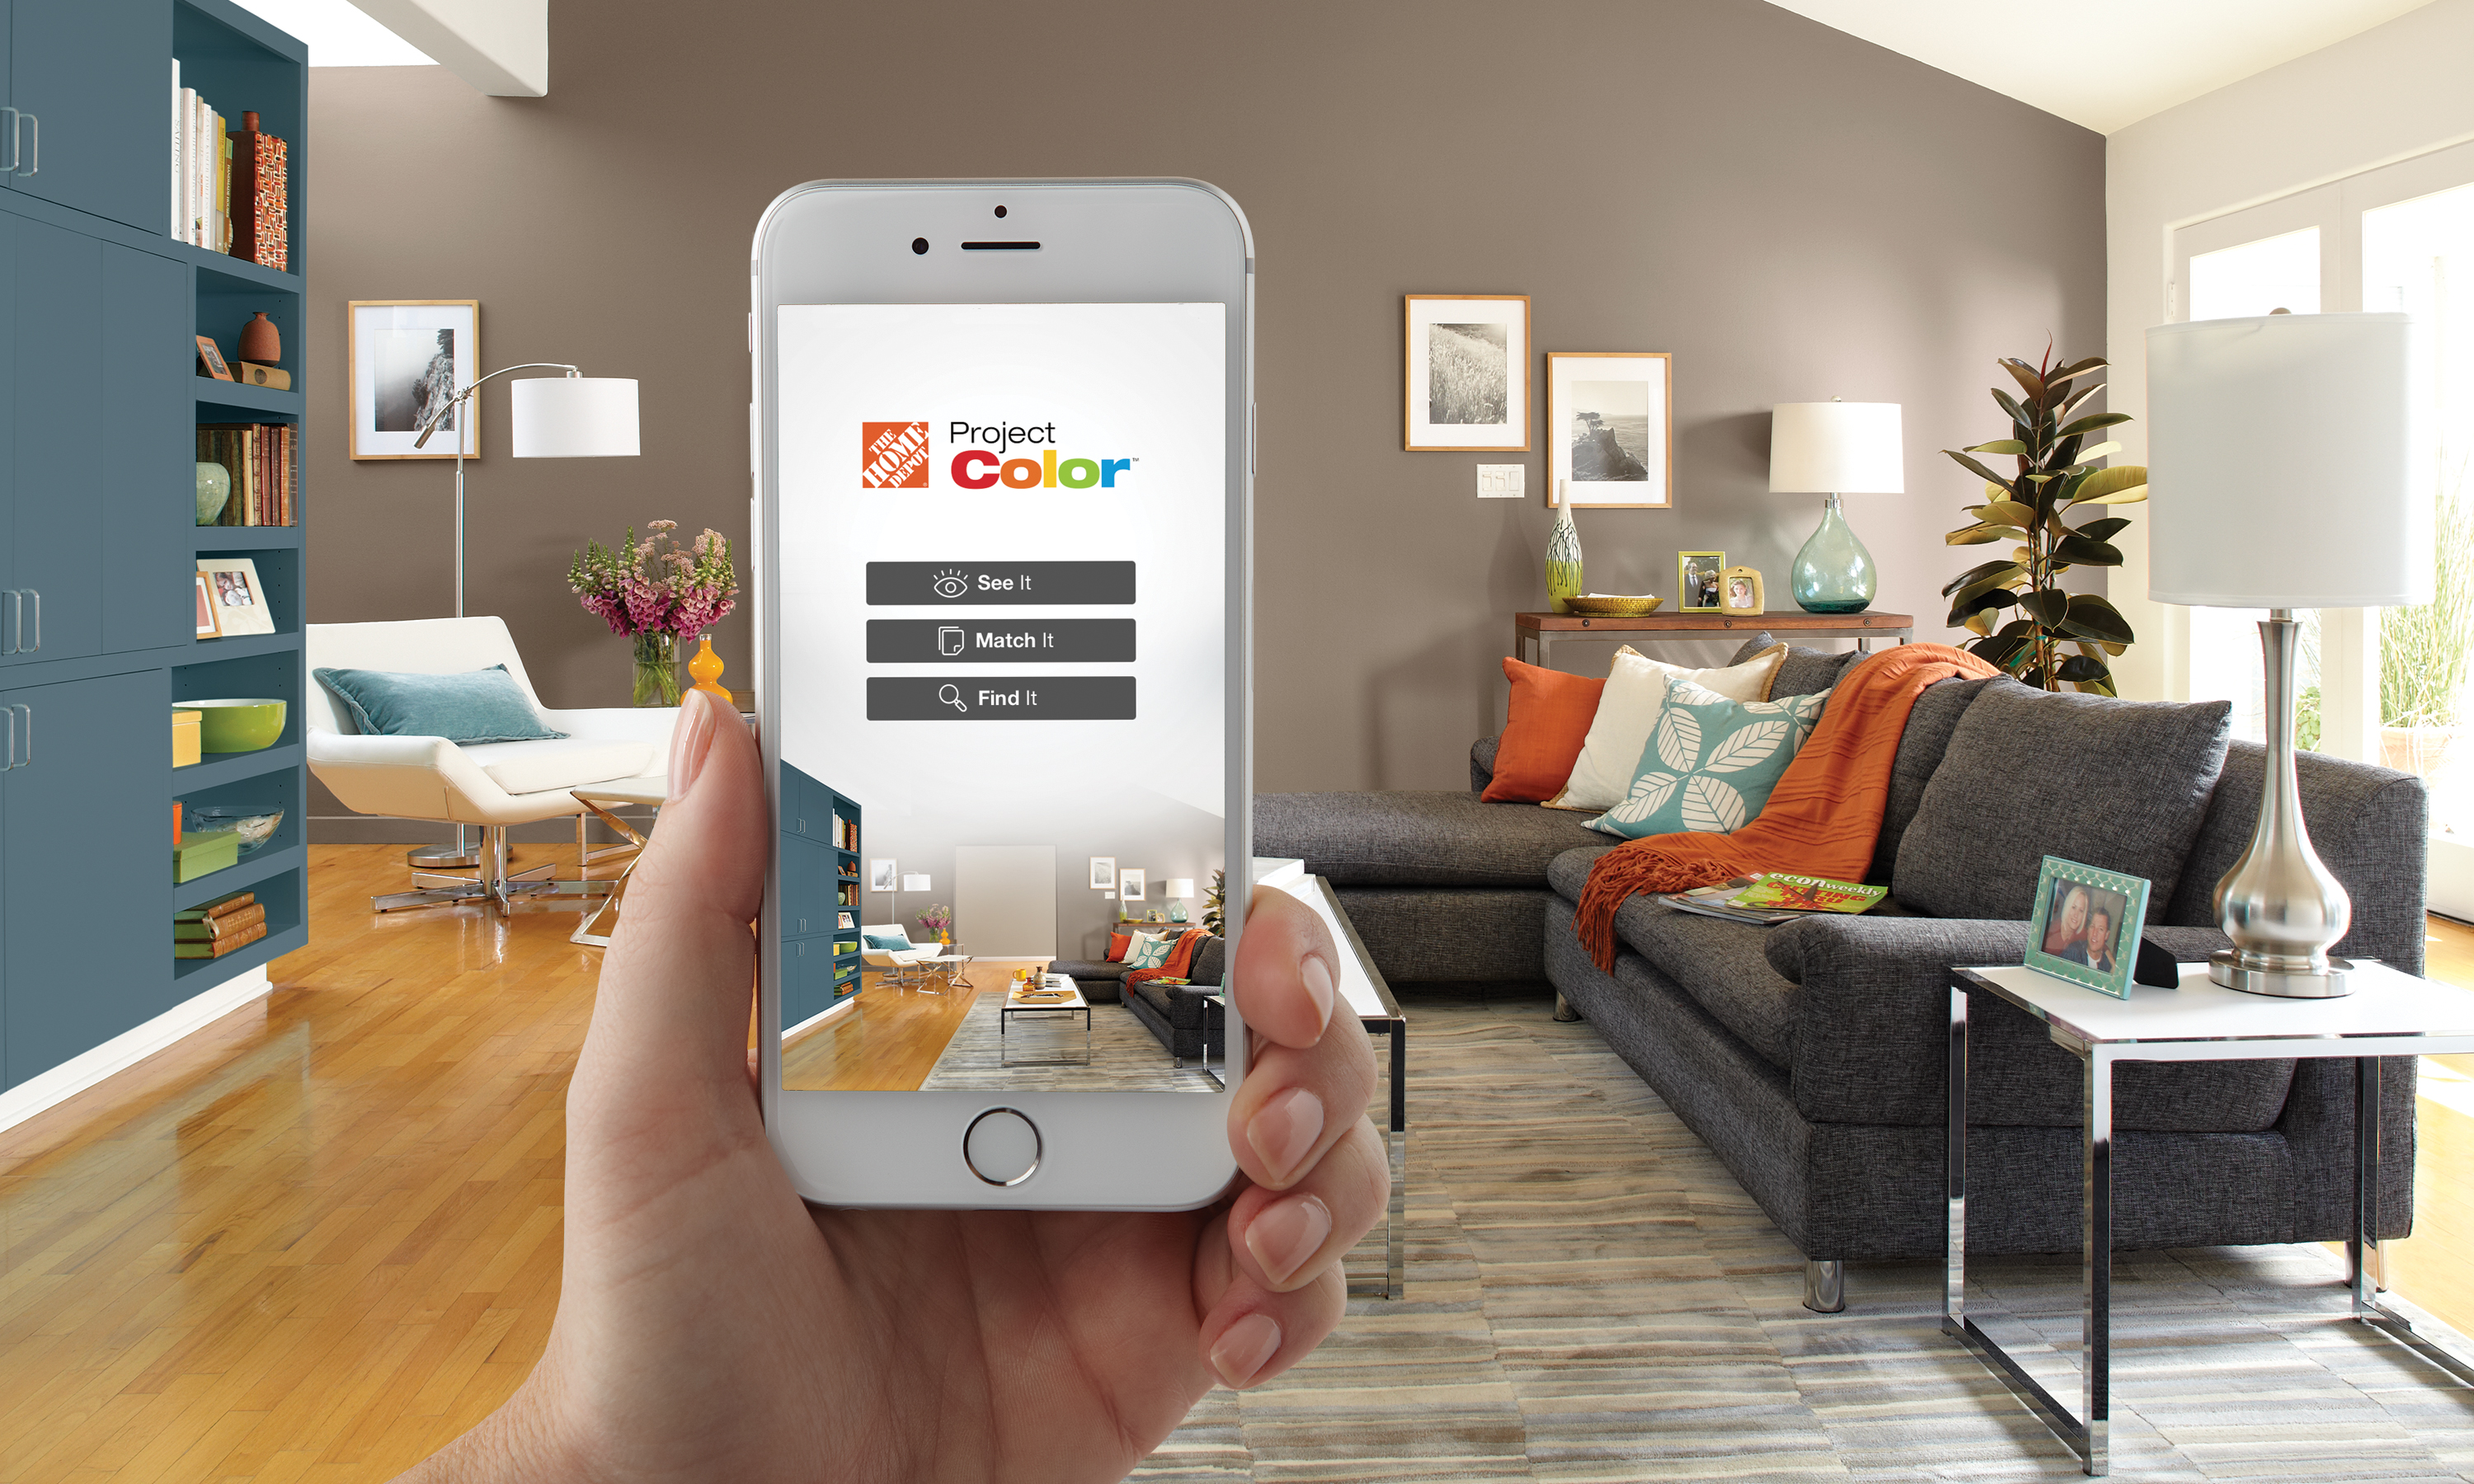 The Home Depot New Technology Shows You the Perfect Paint Color